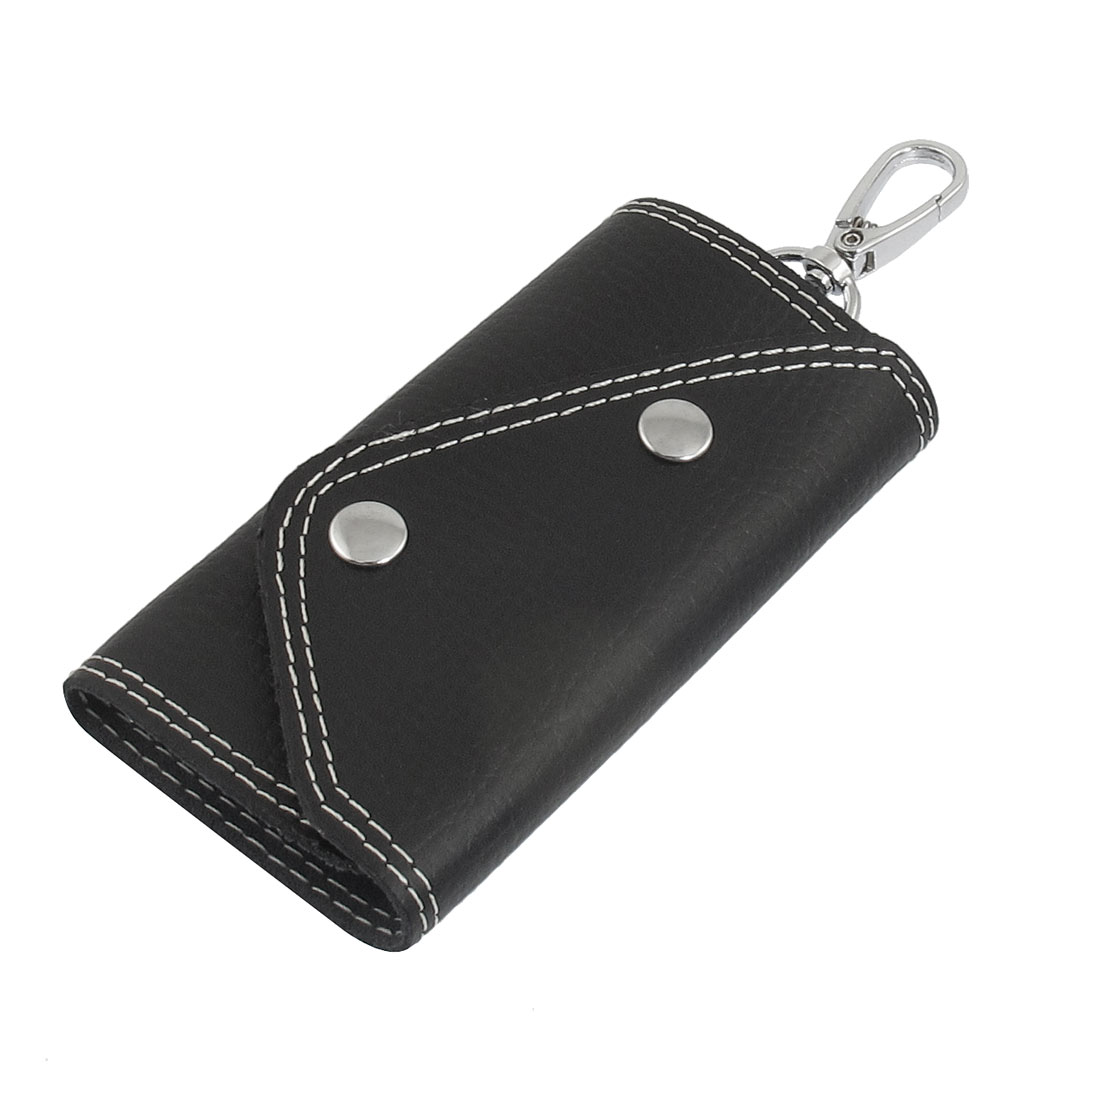 Black Faux Leather Keychain Keyring Holder Carrying Bag Case